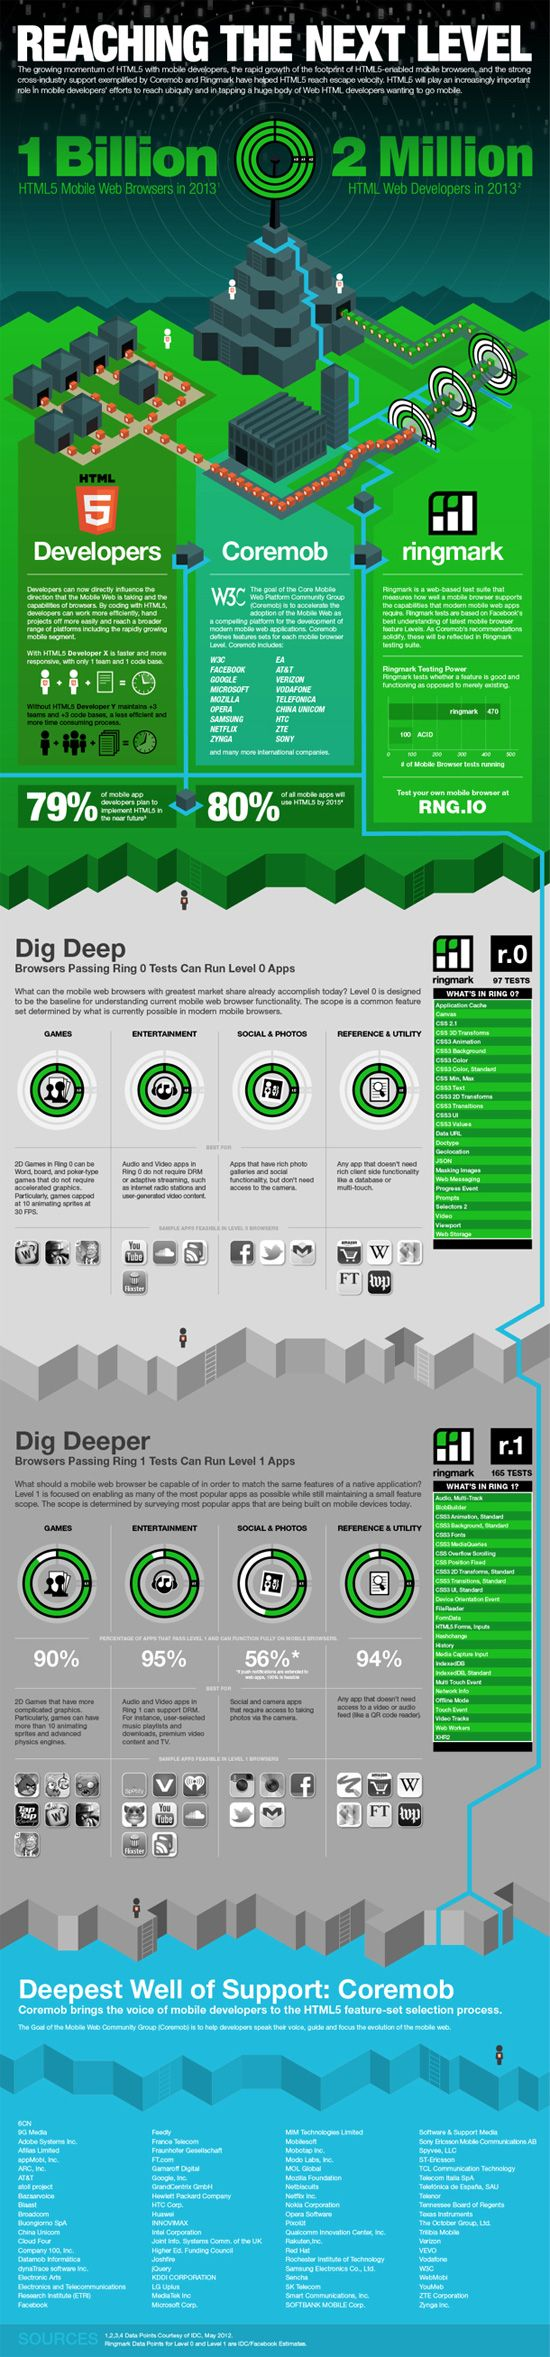 Infographic: Taking HTML5 to the Next Level for Mobile